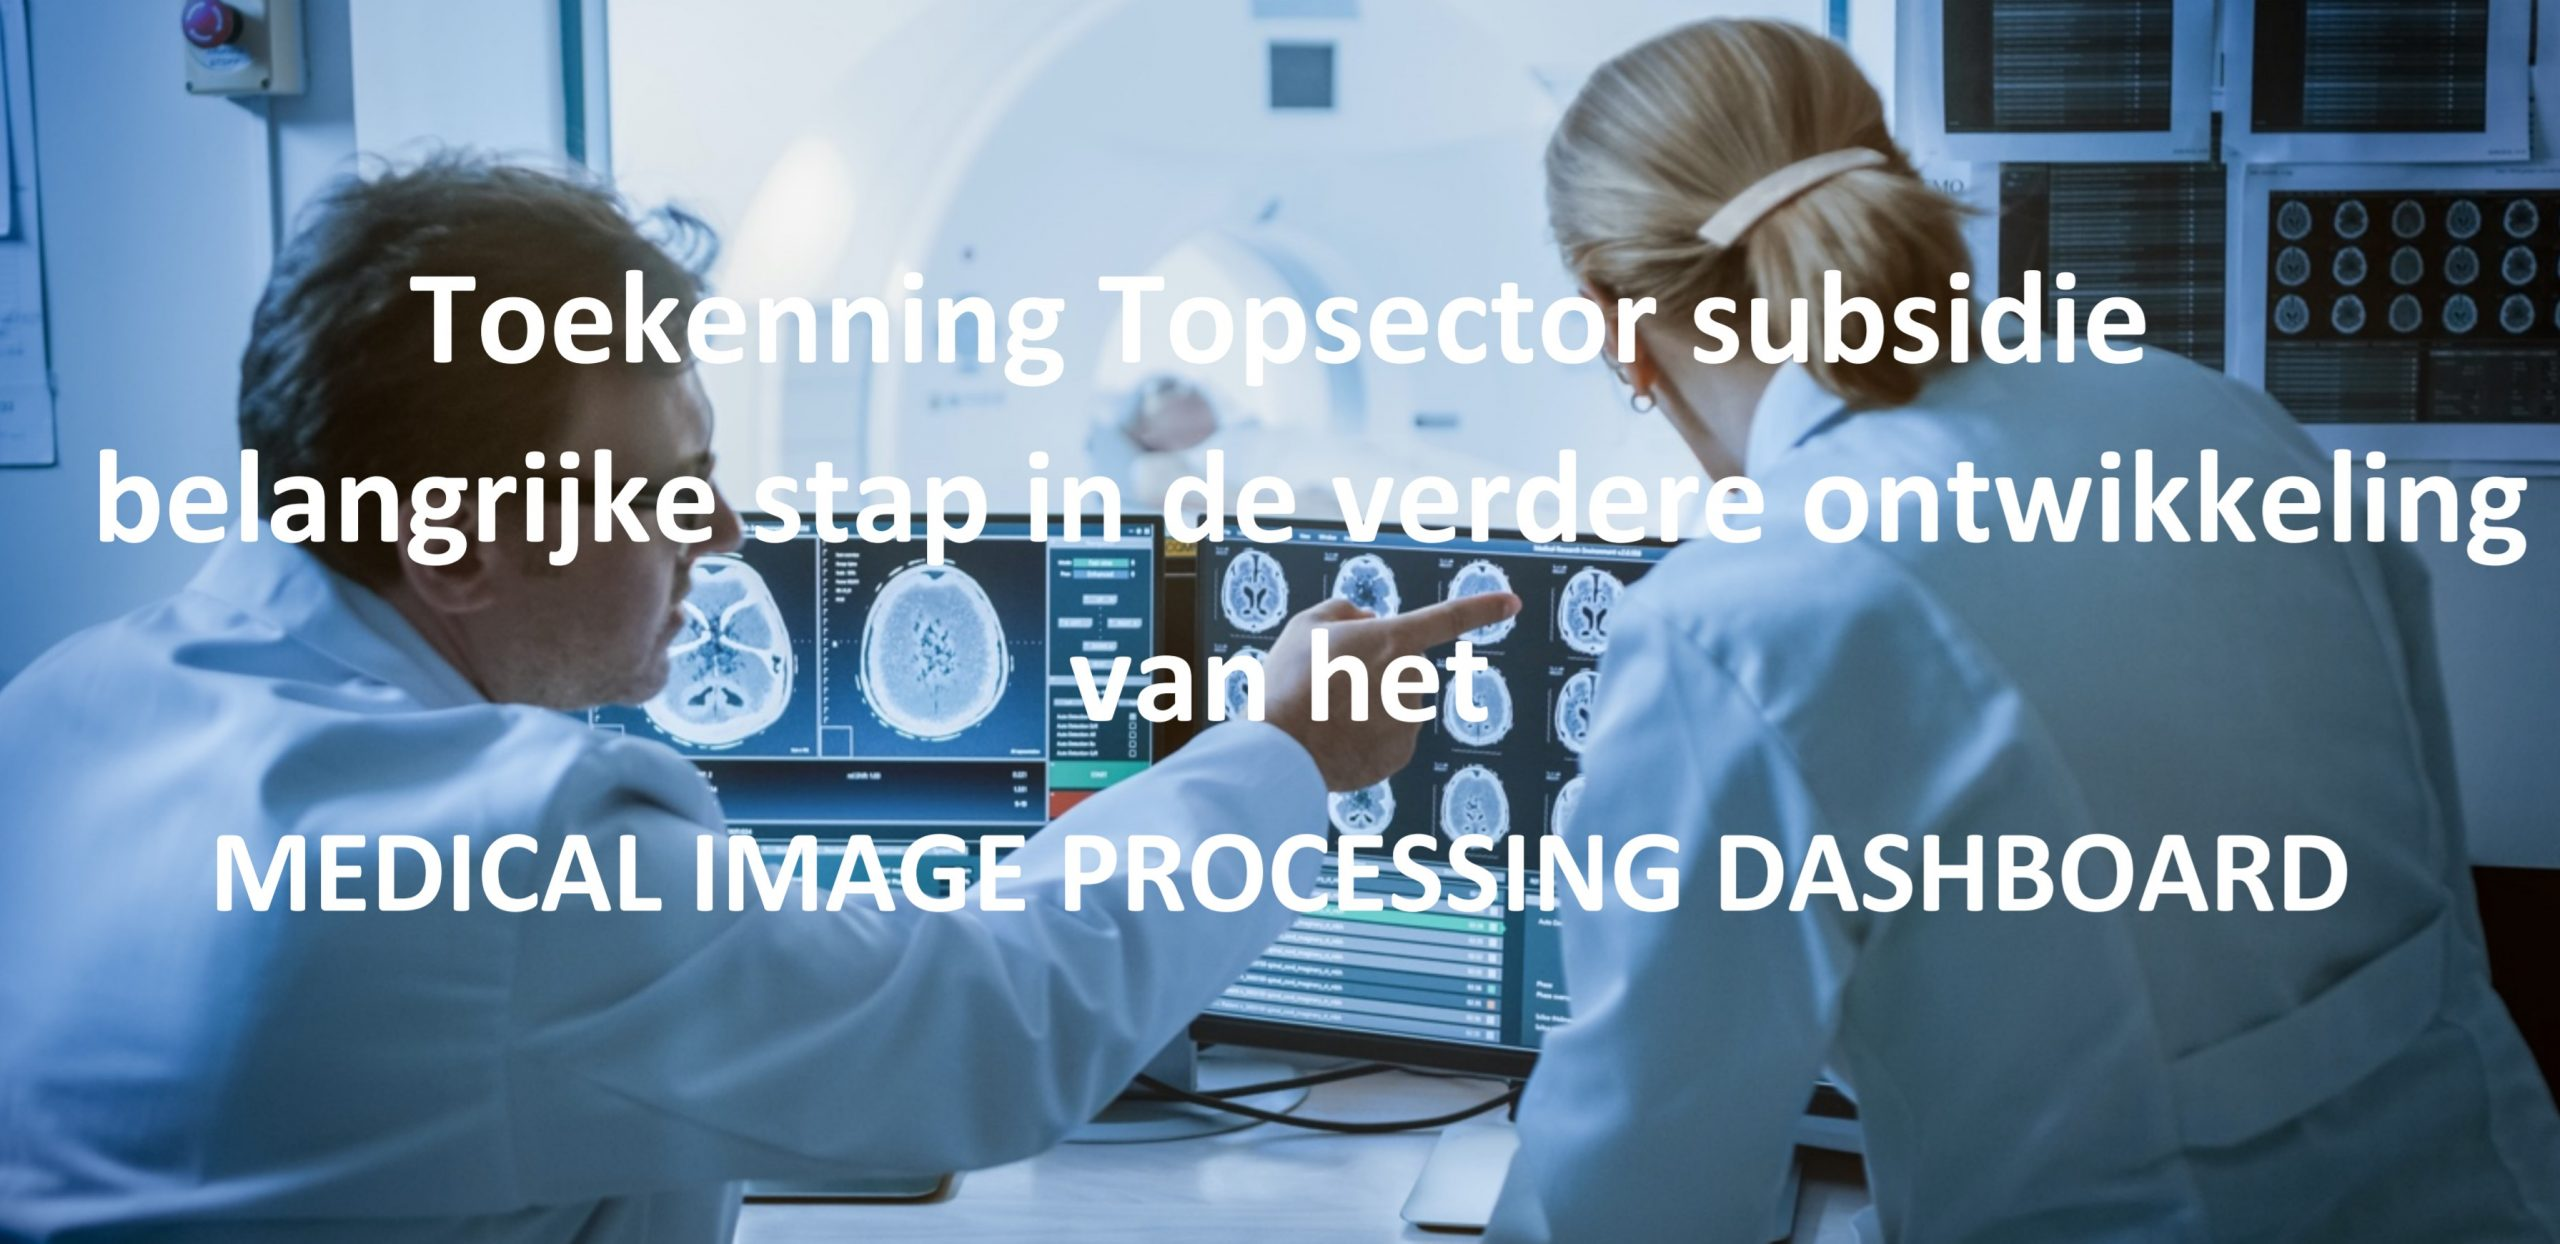 Topsector subsidie voor MEDICAL IMAGE PROCESSING DASHBOARD